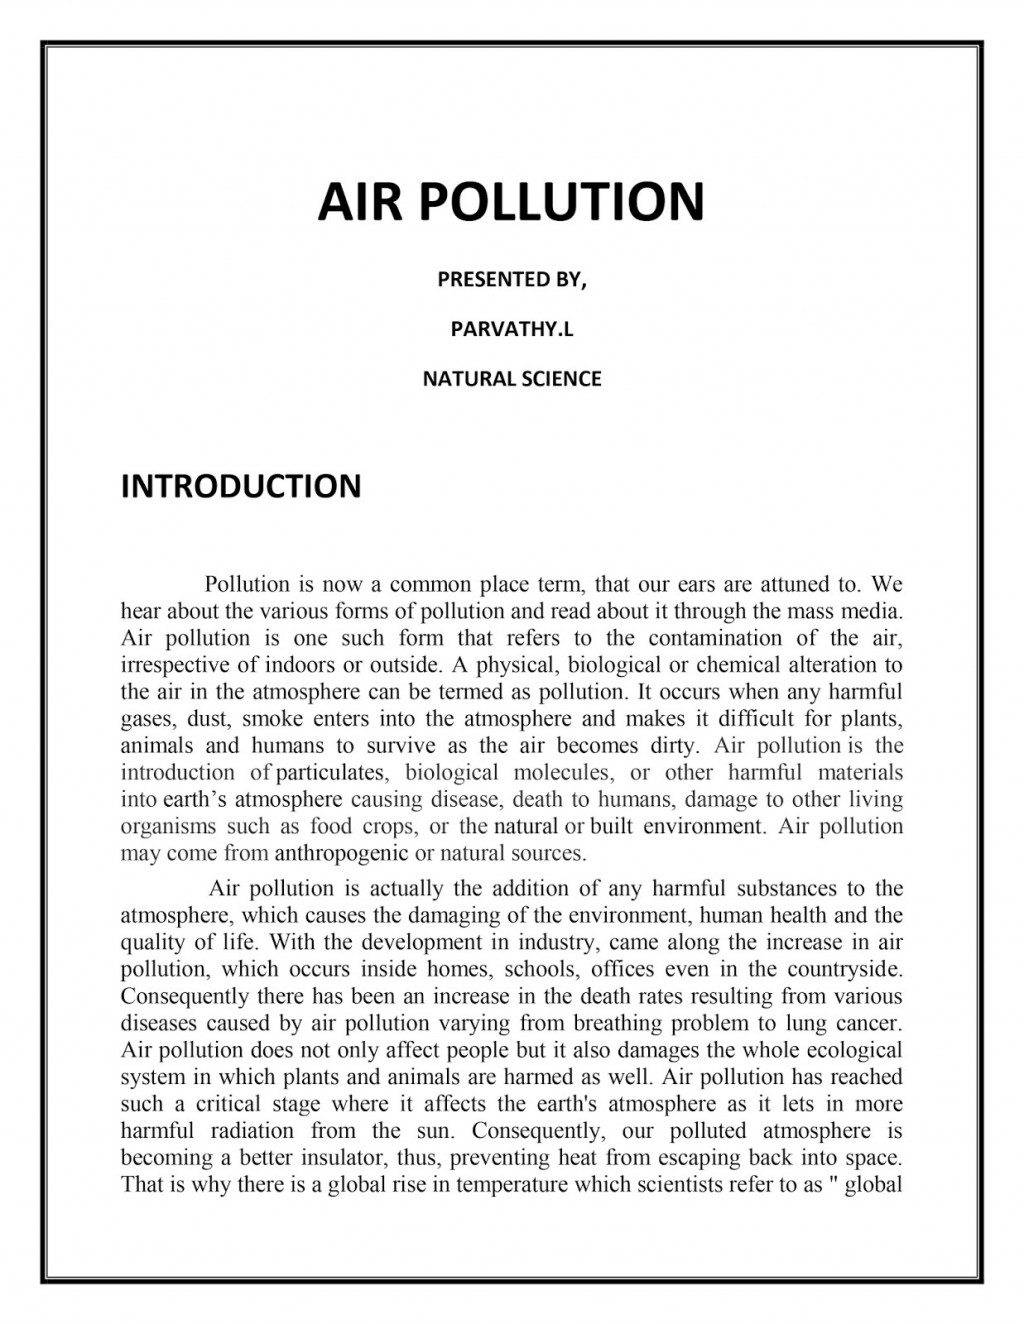 001 Airpollutiononlineassignment Essay Example Remarkable Pollution Thesis Statement Air In English 1000 Words Large